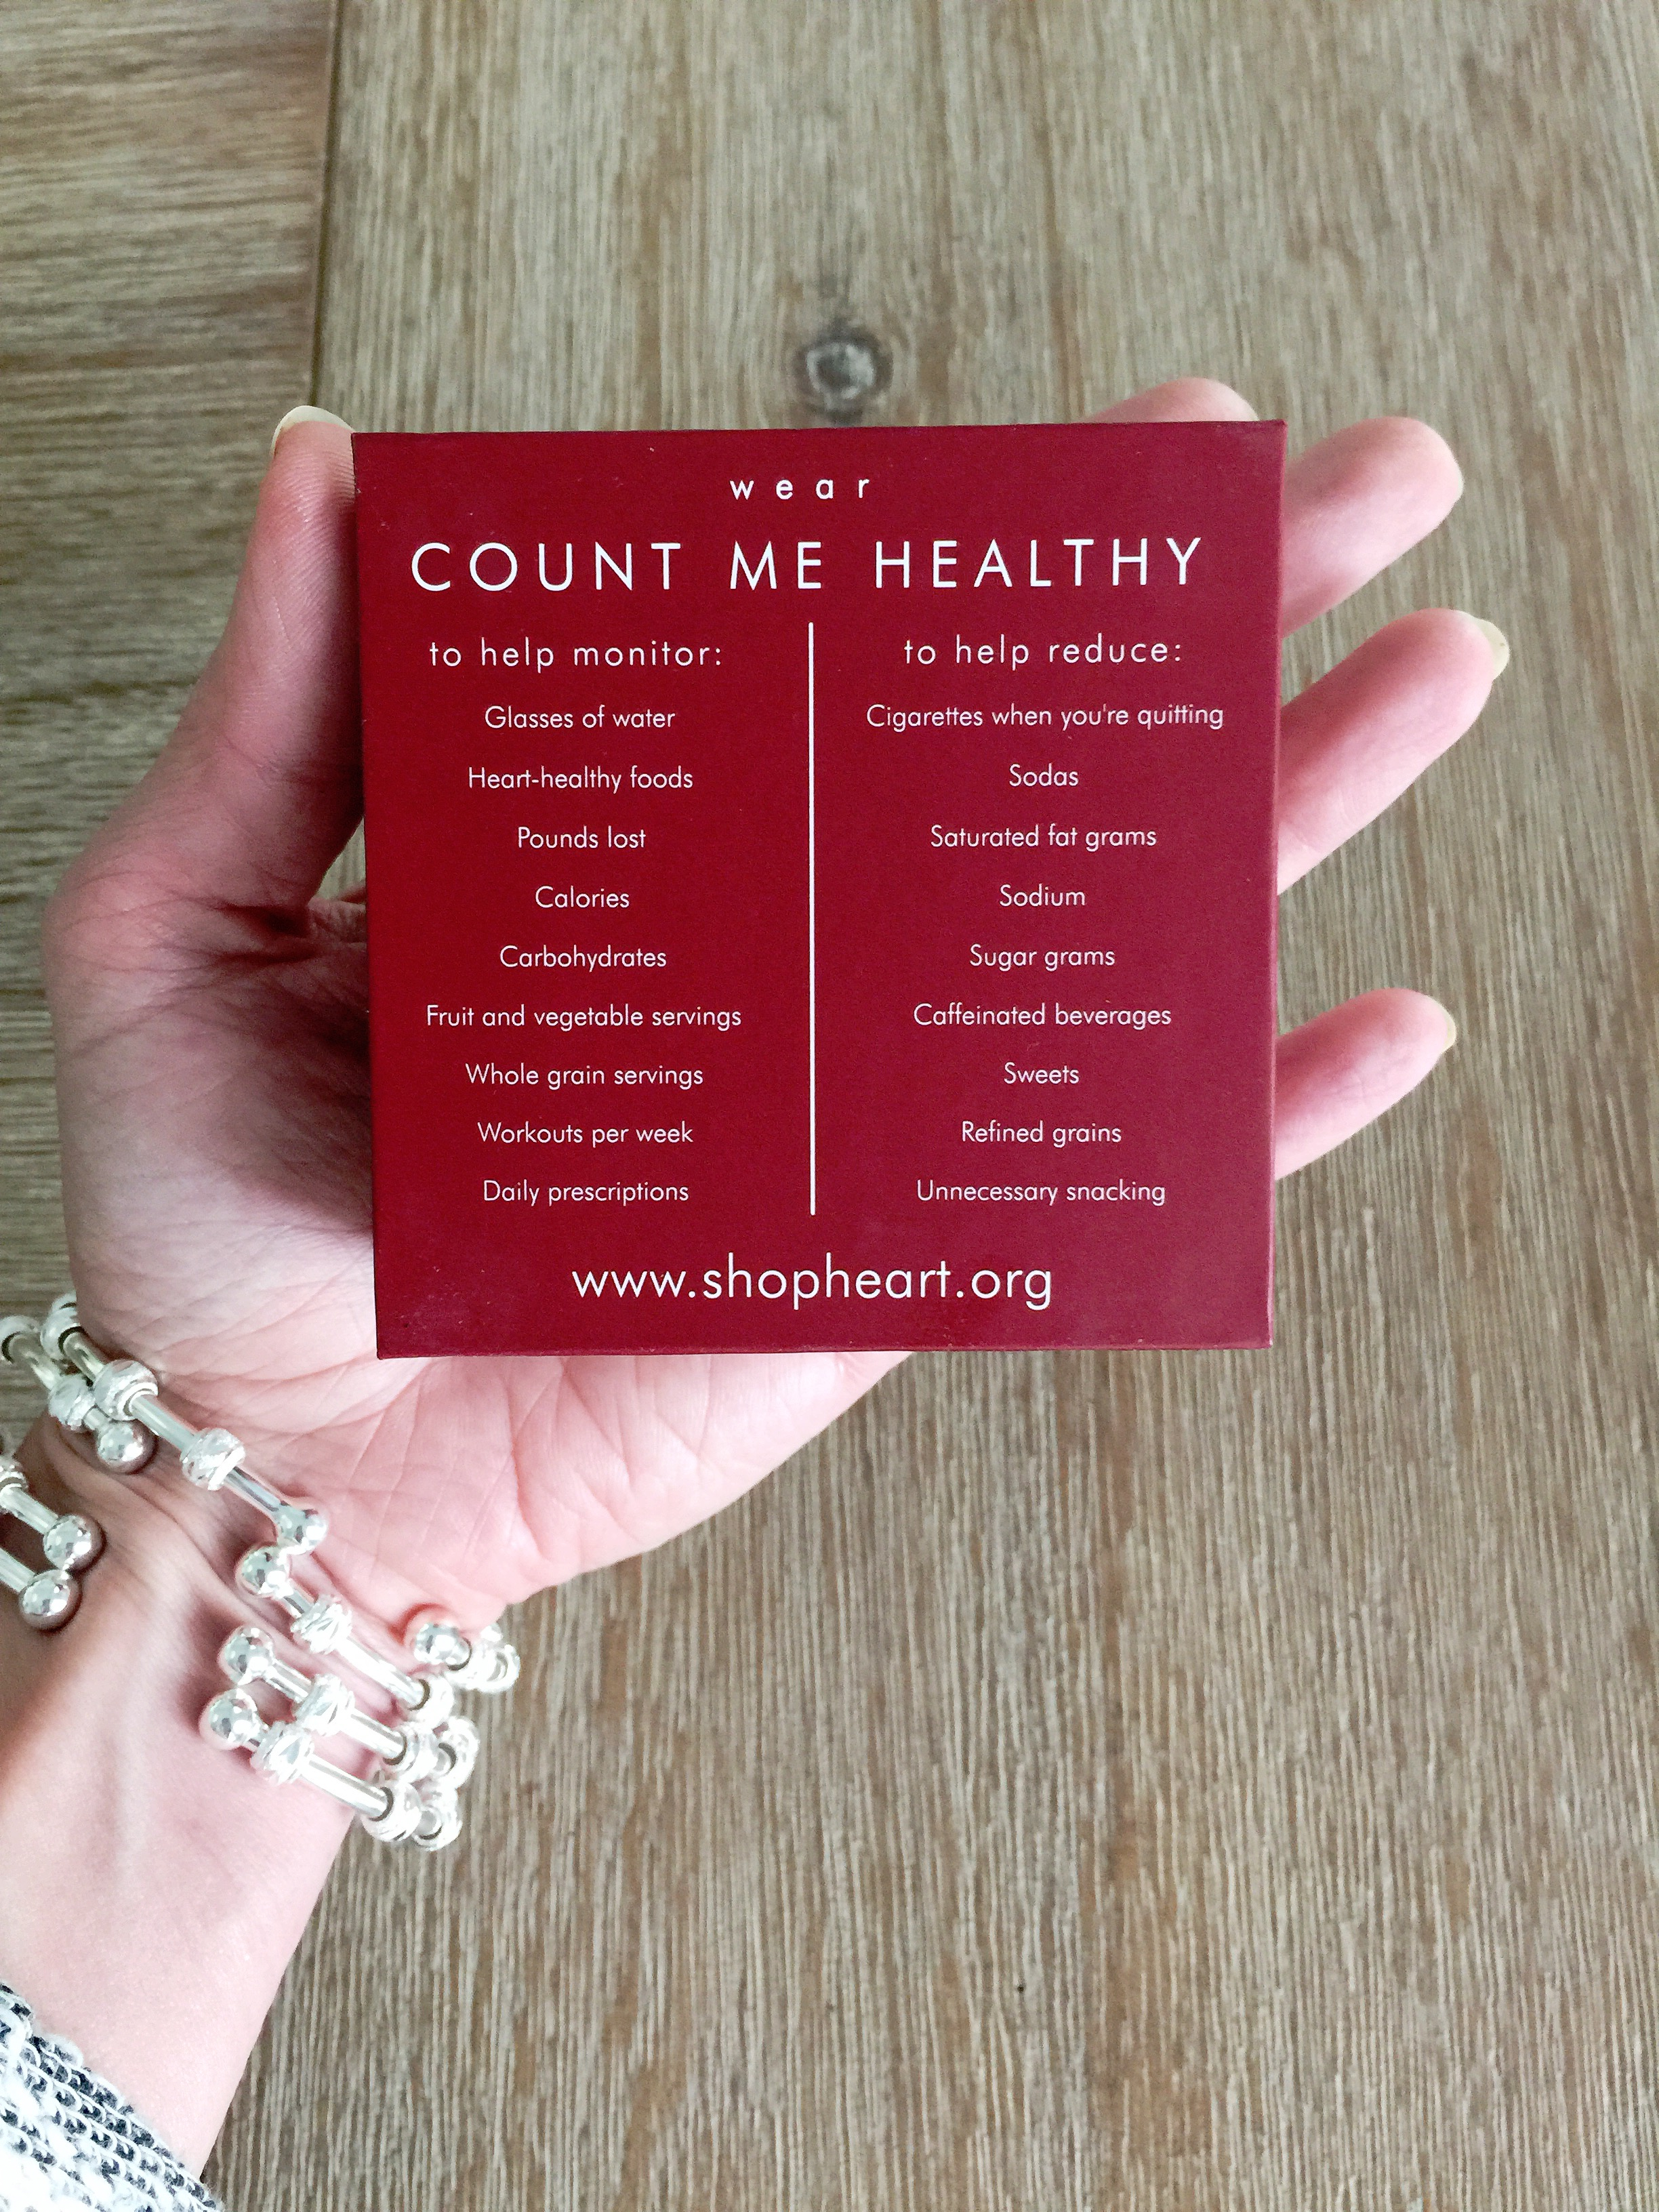 Count Me Healthy Helping Hearts Journal Bracelet for the American Heart Association